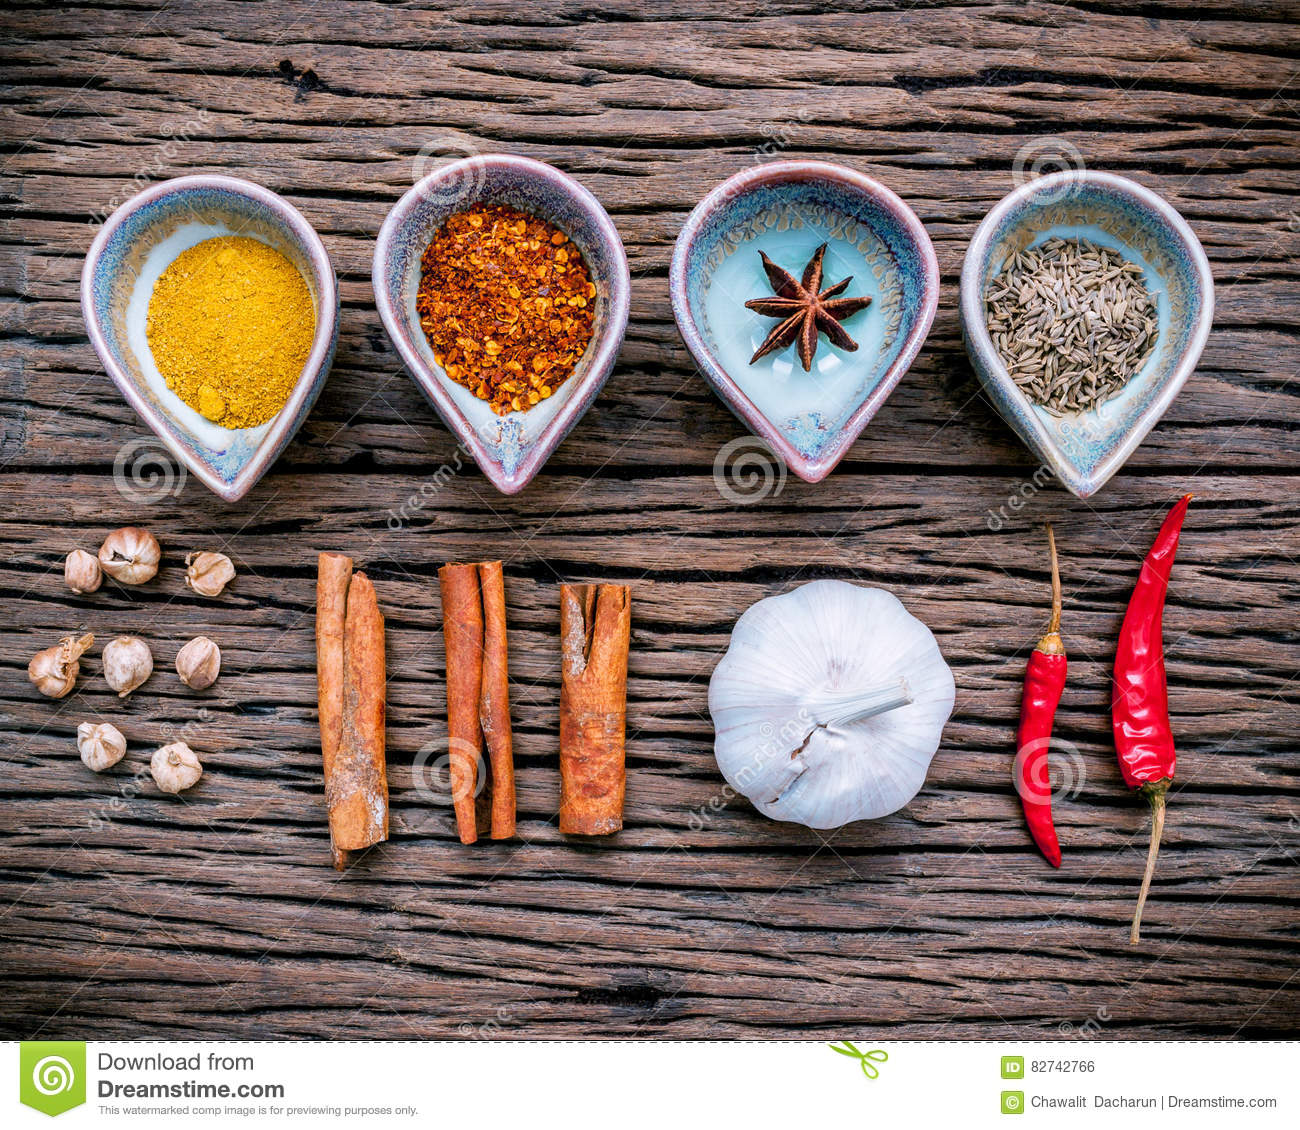 Various herbs and spices in ceramic bowl . Food and cuisine ingredients on rustic wooden background.